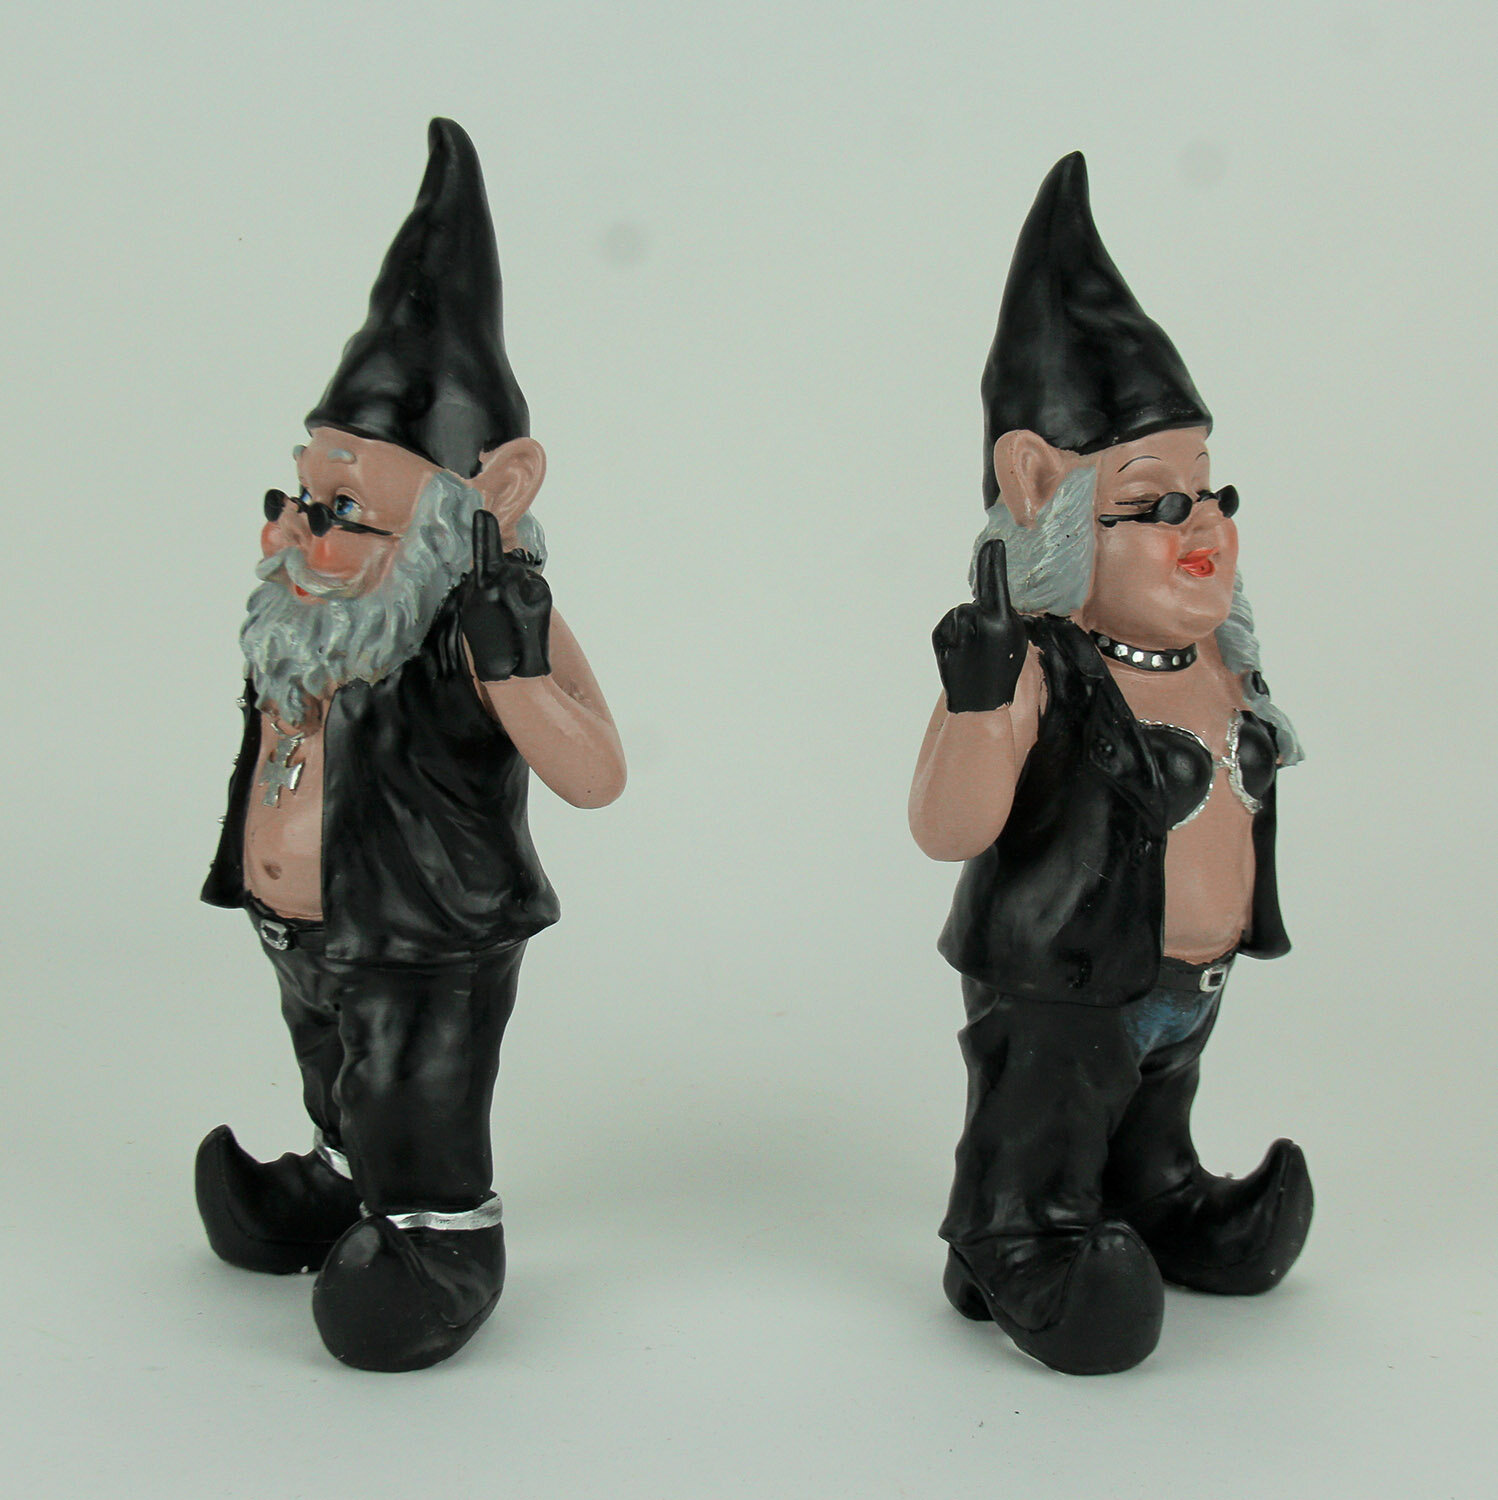 Ebros Whimsical Gnome With Greeting Signs Statues 4 Tall Collectible Set of 4 Welcome Gnome Family Figurines